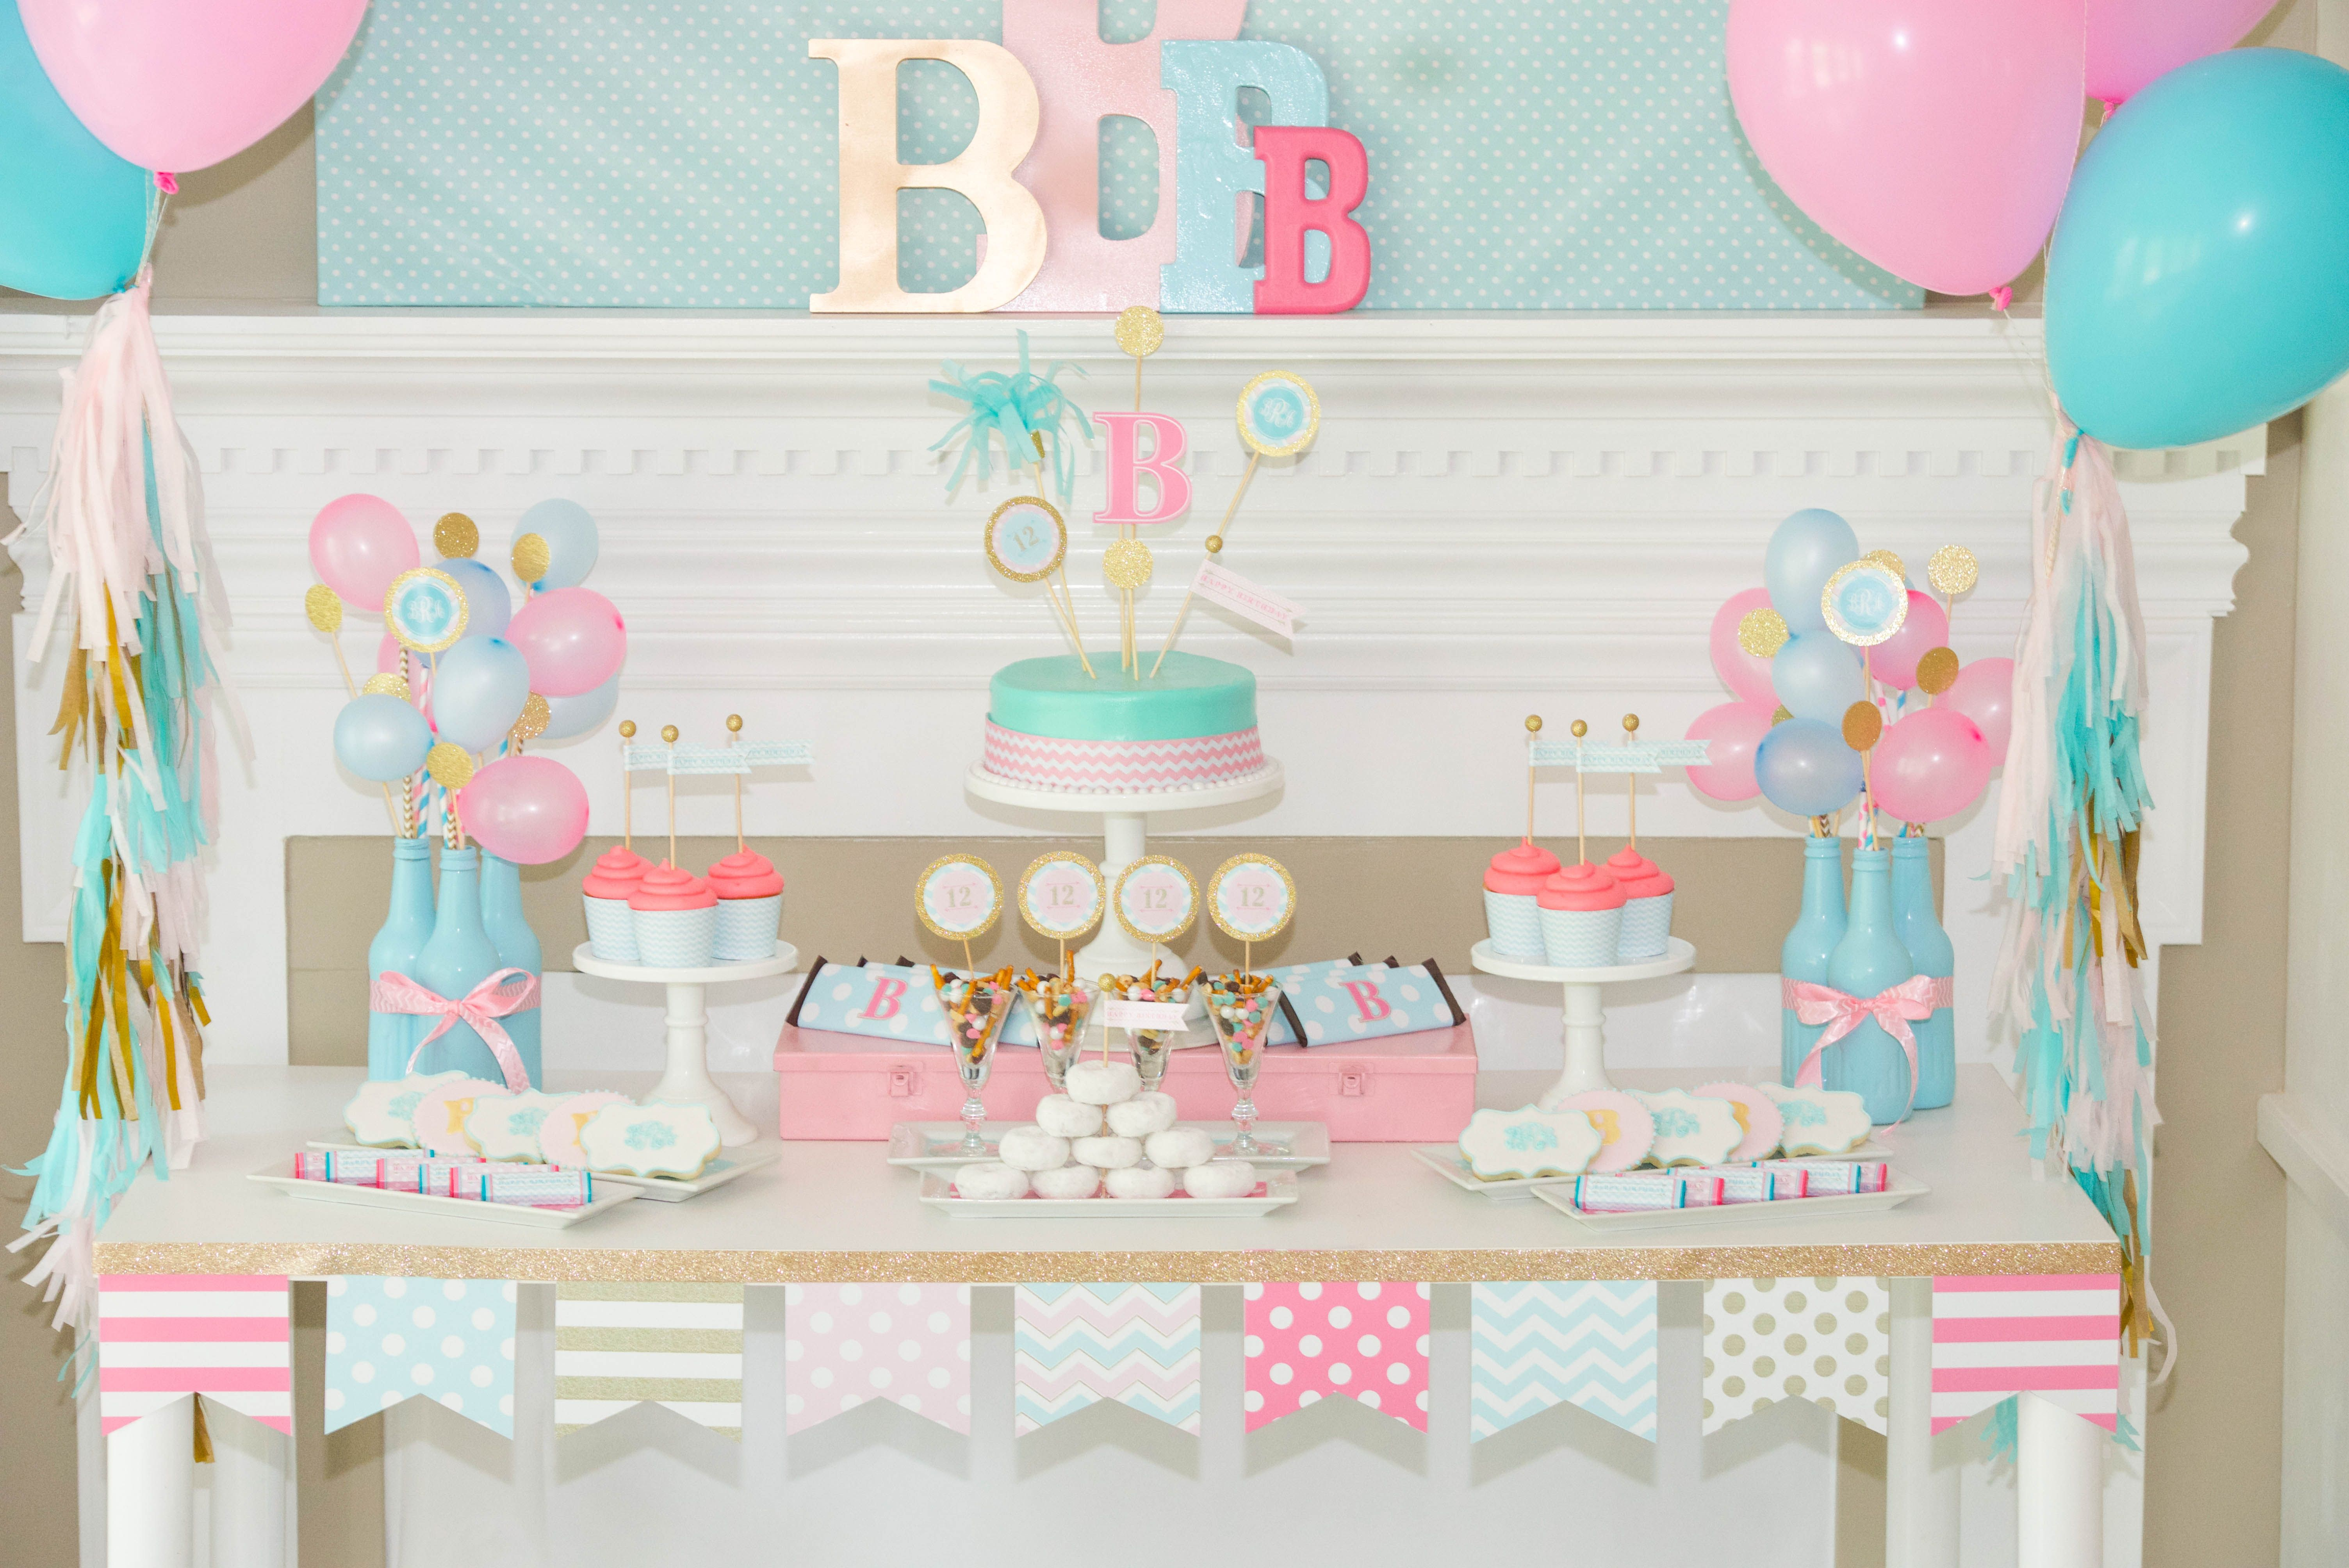 Pin by Carolina Zegarra ♡ on P A R T Y | Pinterest | Birthday party ...